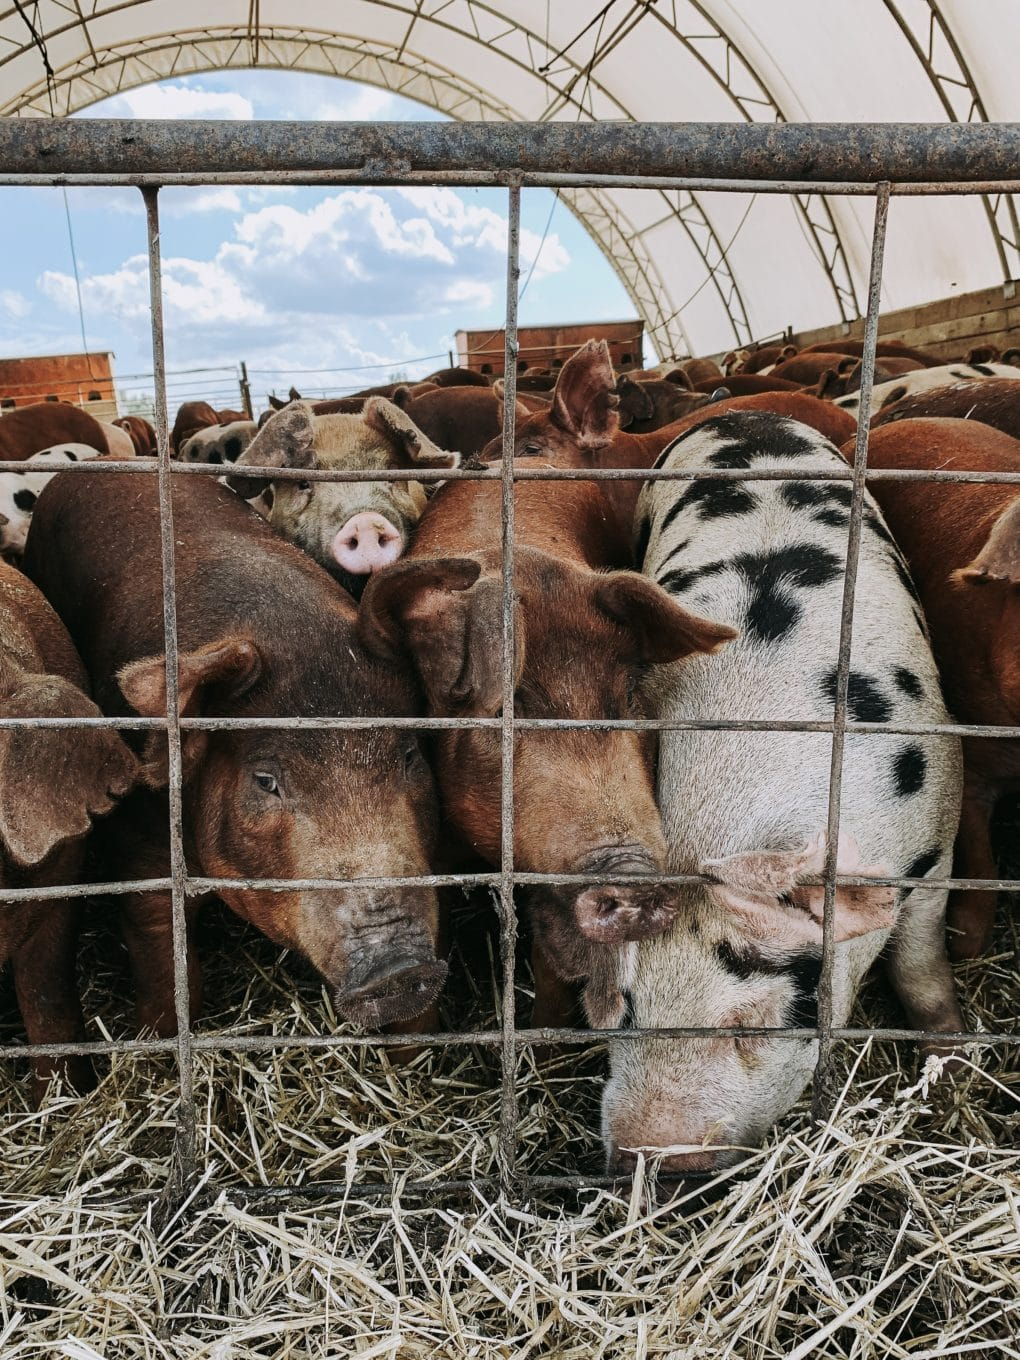 pigs in a pen at a pig farm